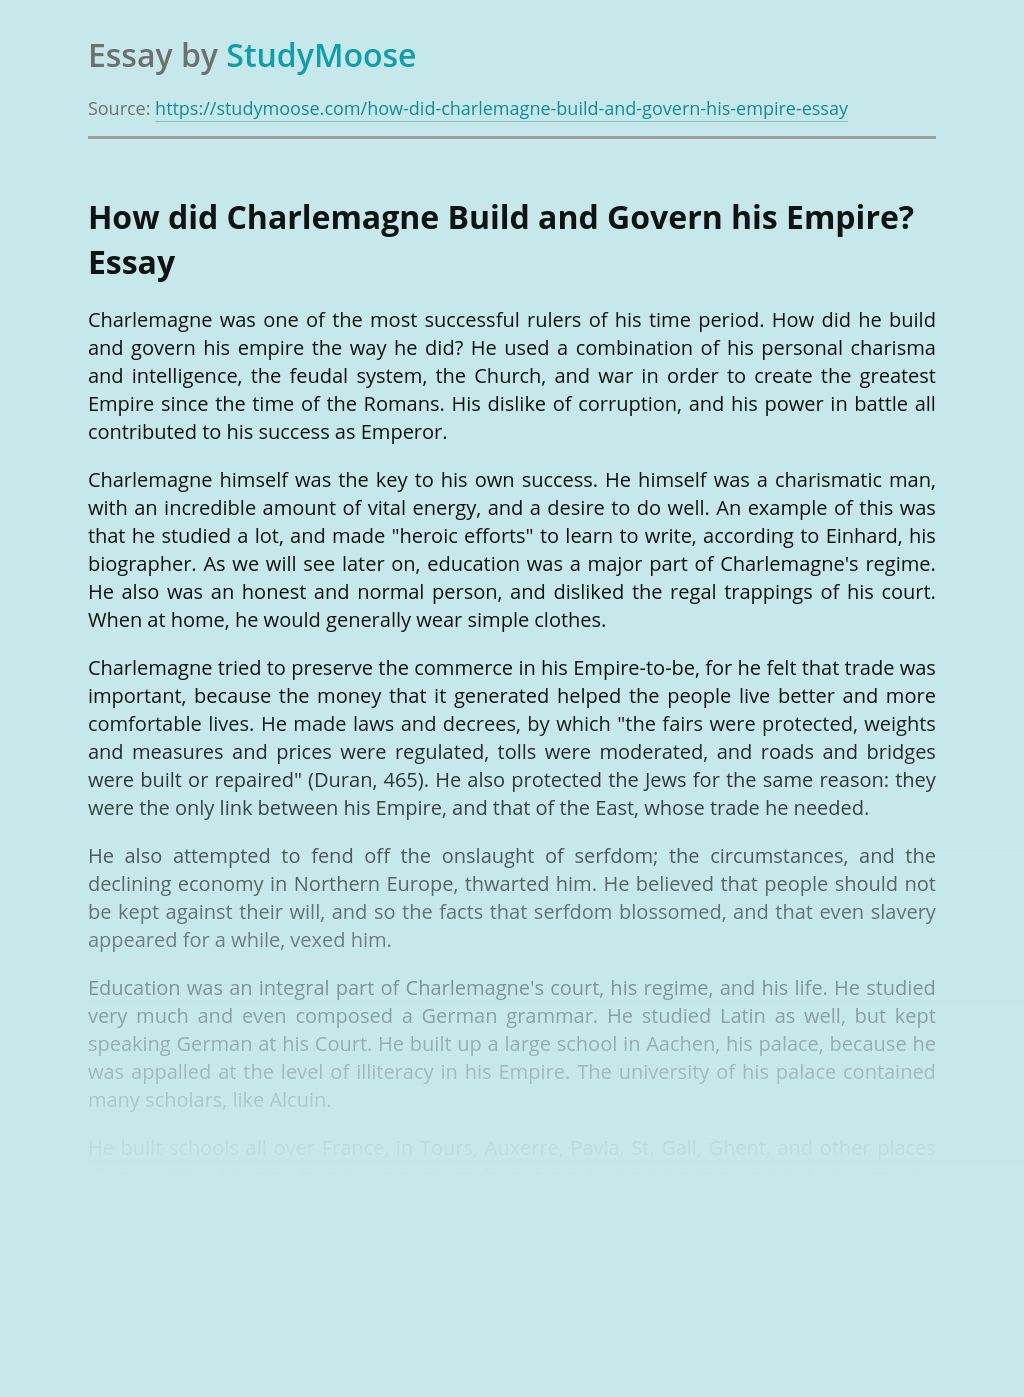 How did Charlemagne Build and Govern his Empire?